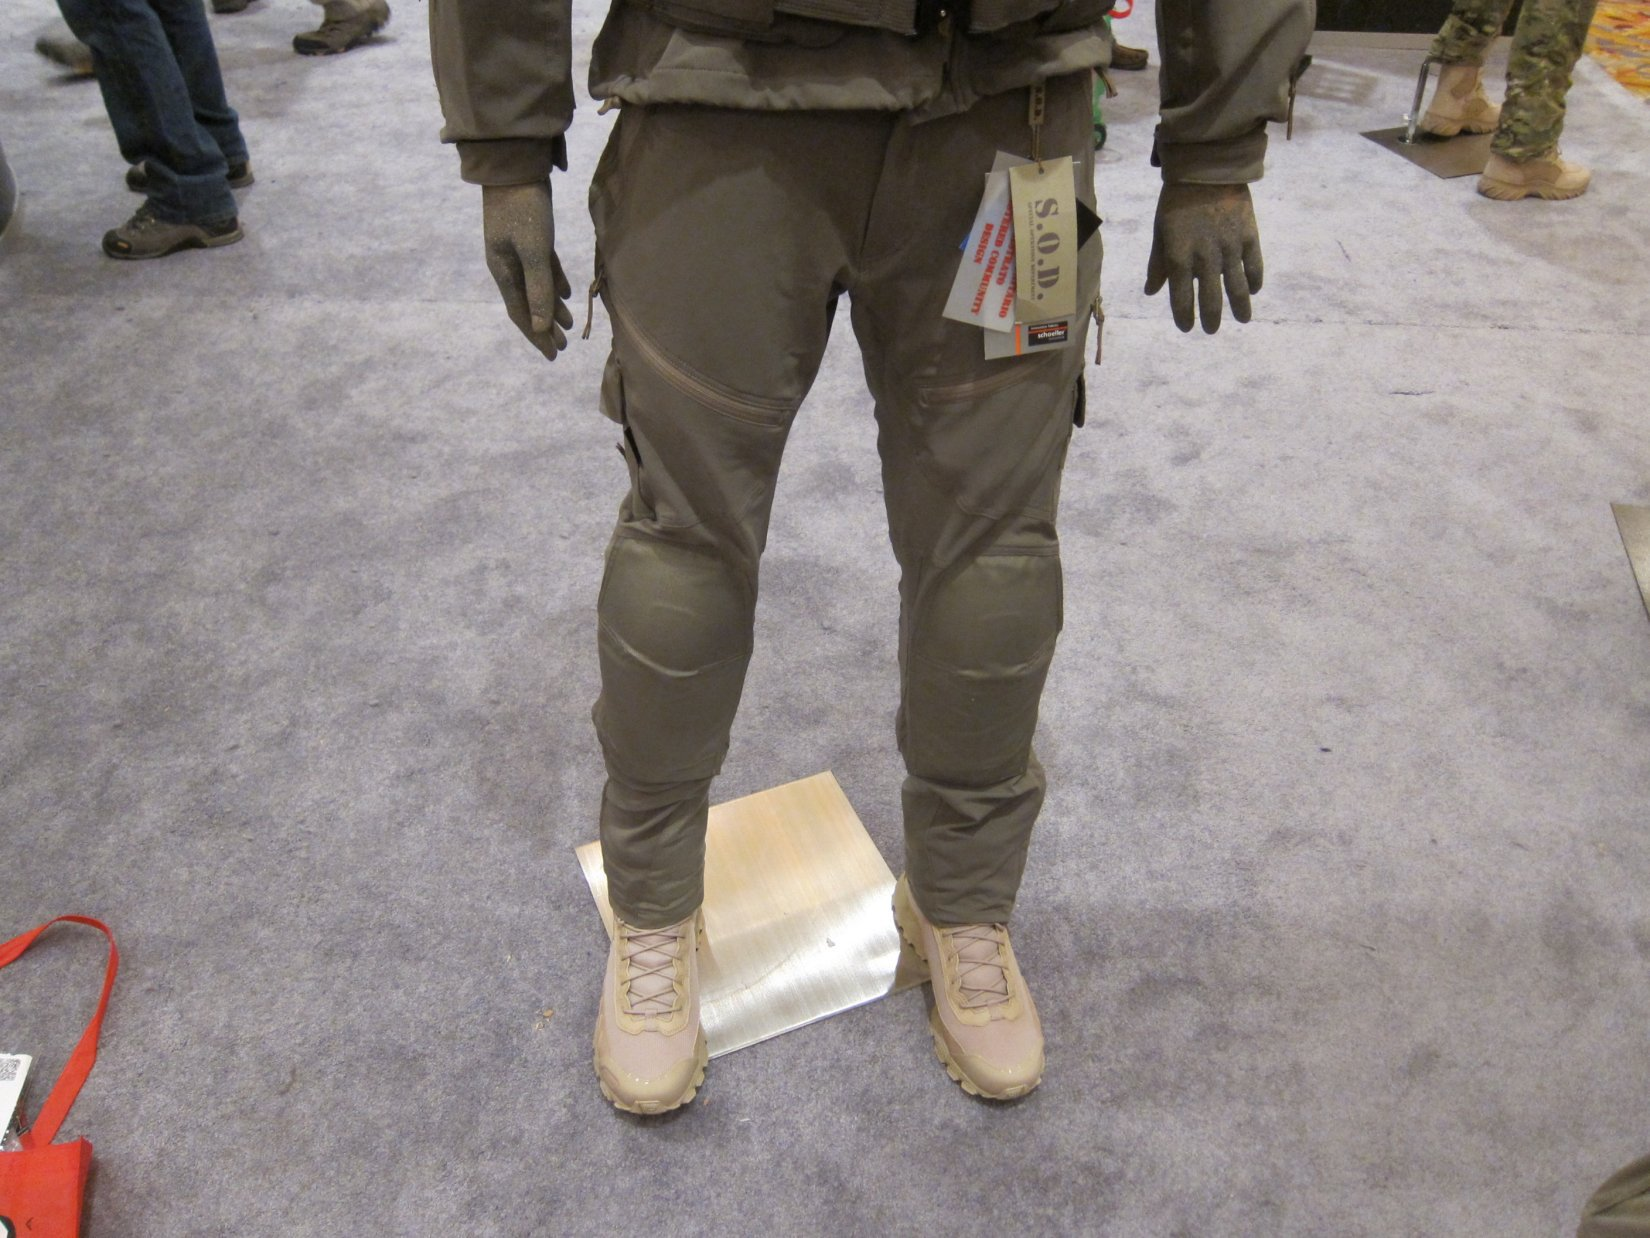 SOD Gear Special Operations Department Gear Max Valente Italian Tactical Combat Clothing TangoDown SHOT Show 2012 1 17 2012 DefenseReview.com DR 3 SOD Gear/SOD USA Stealth ADP Battle Jacket and Pants Made with Schoeller Performance Fabric: High Tech Combat Clothing for Military Special Operations Forces (SOF) and Civilian Tactical Shooters